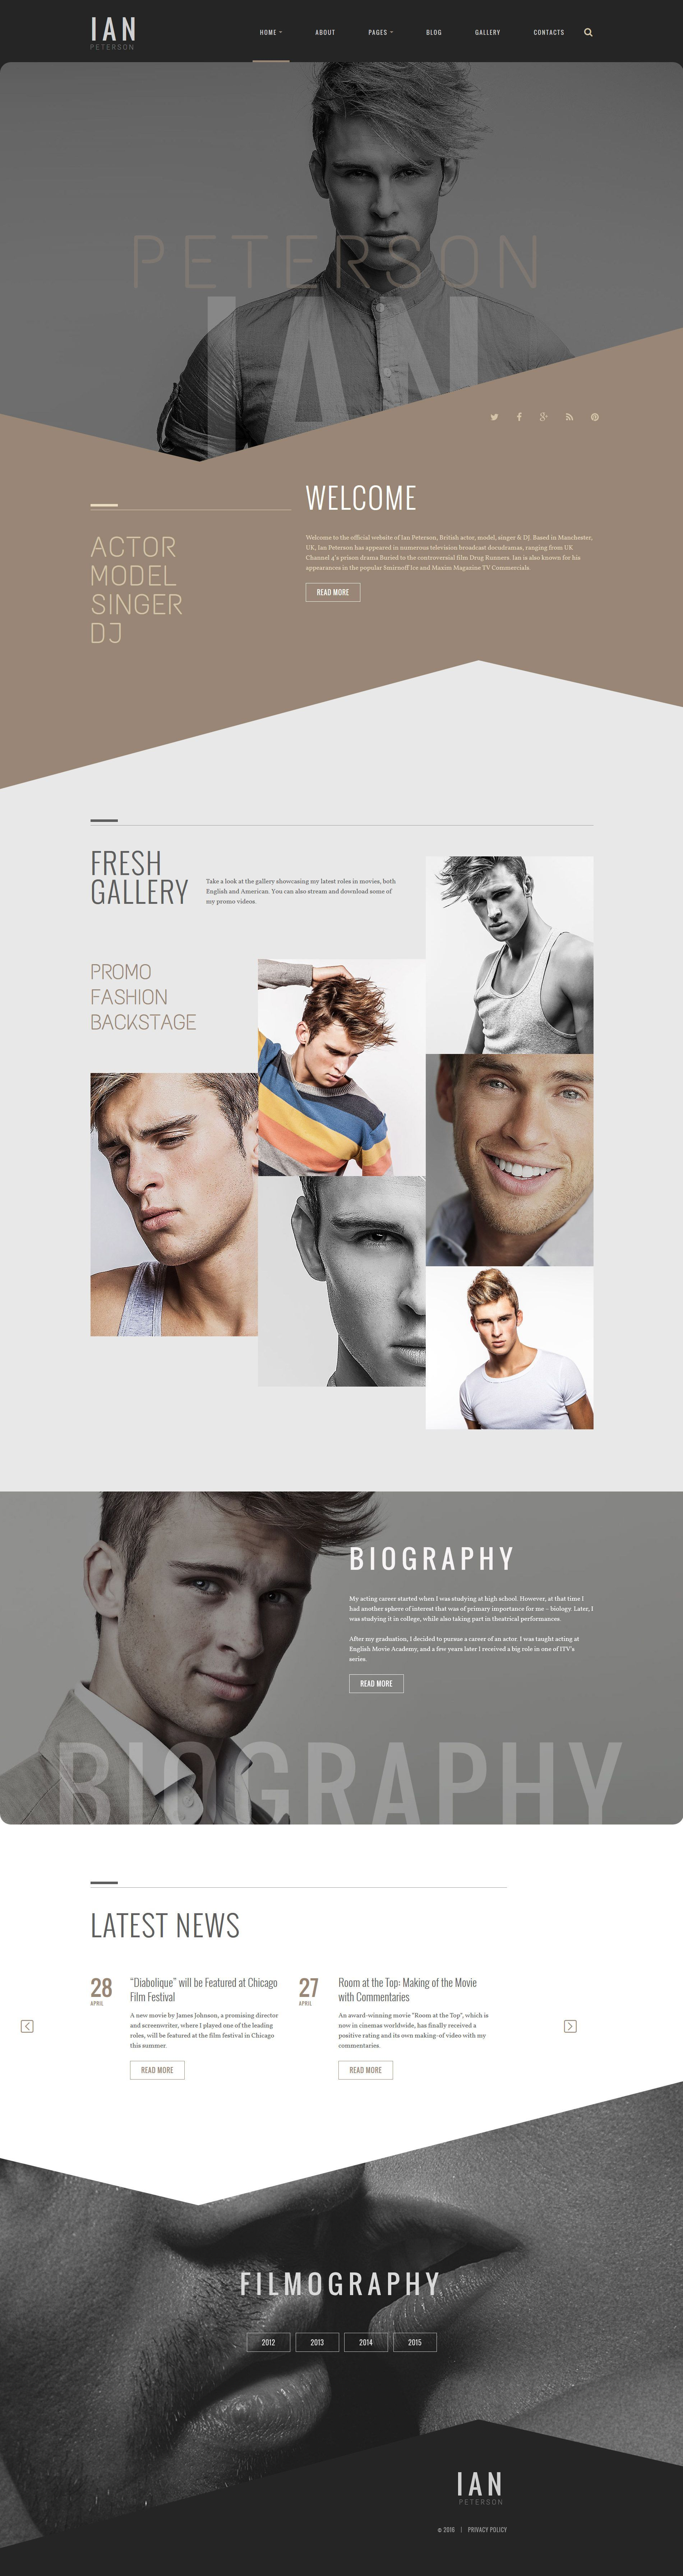 Ian Peterson Joomla Template | Template, Design layouts and Typo